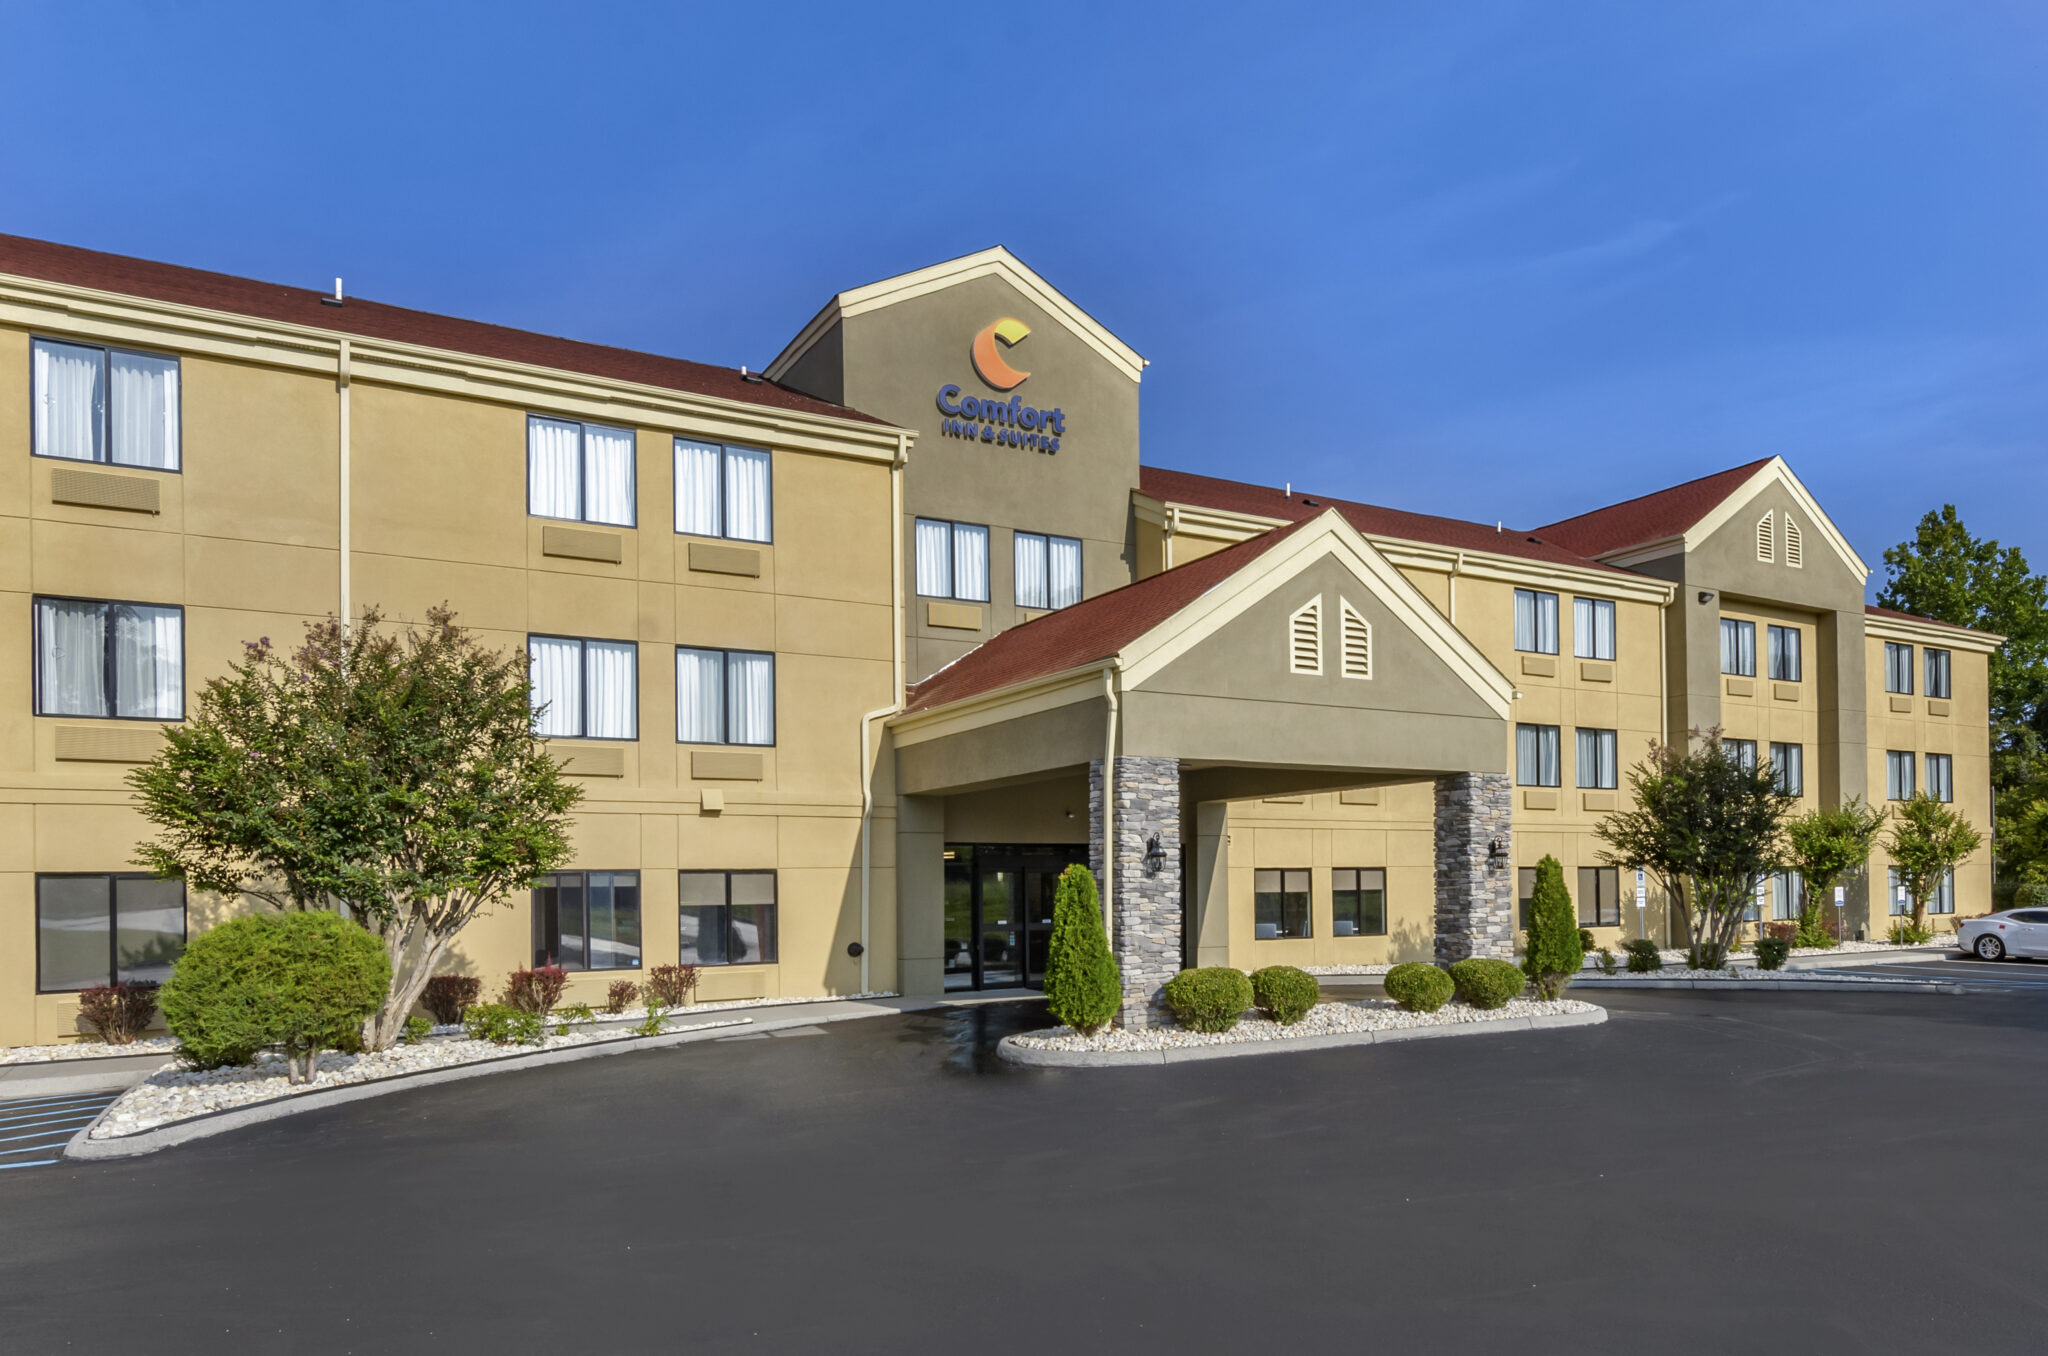 Comfort Inn and Suites North Roanoke